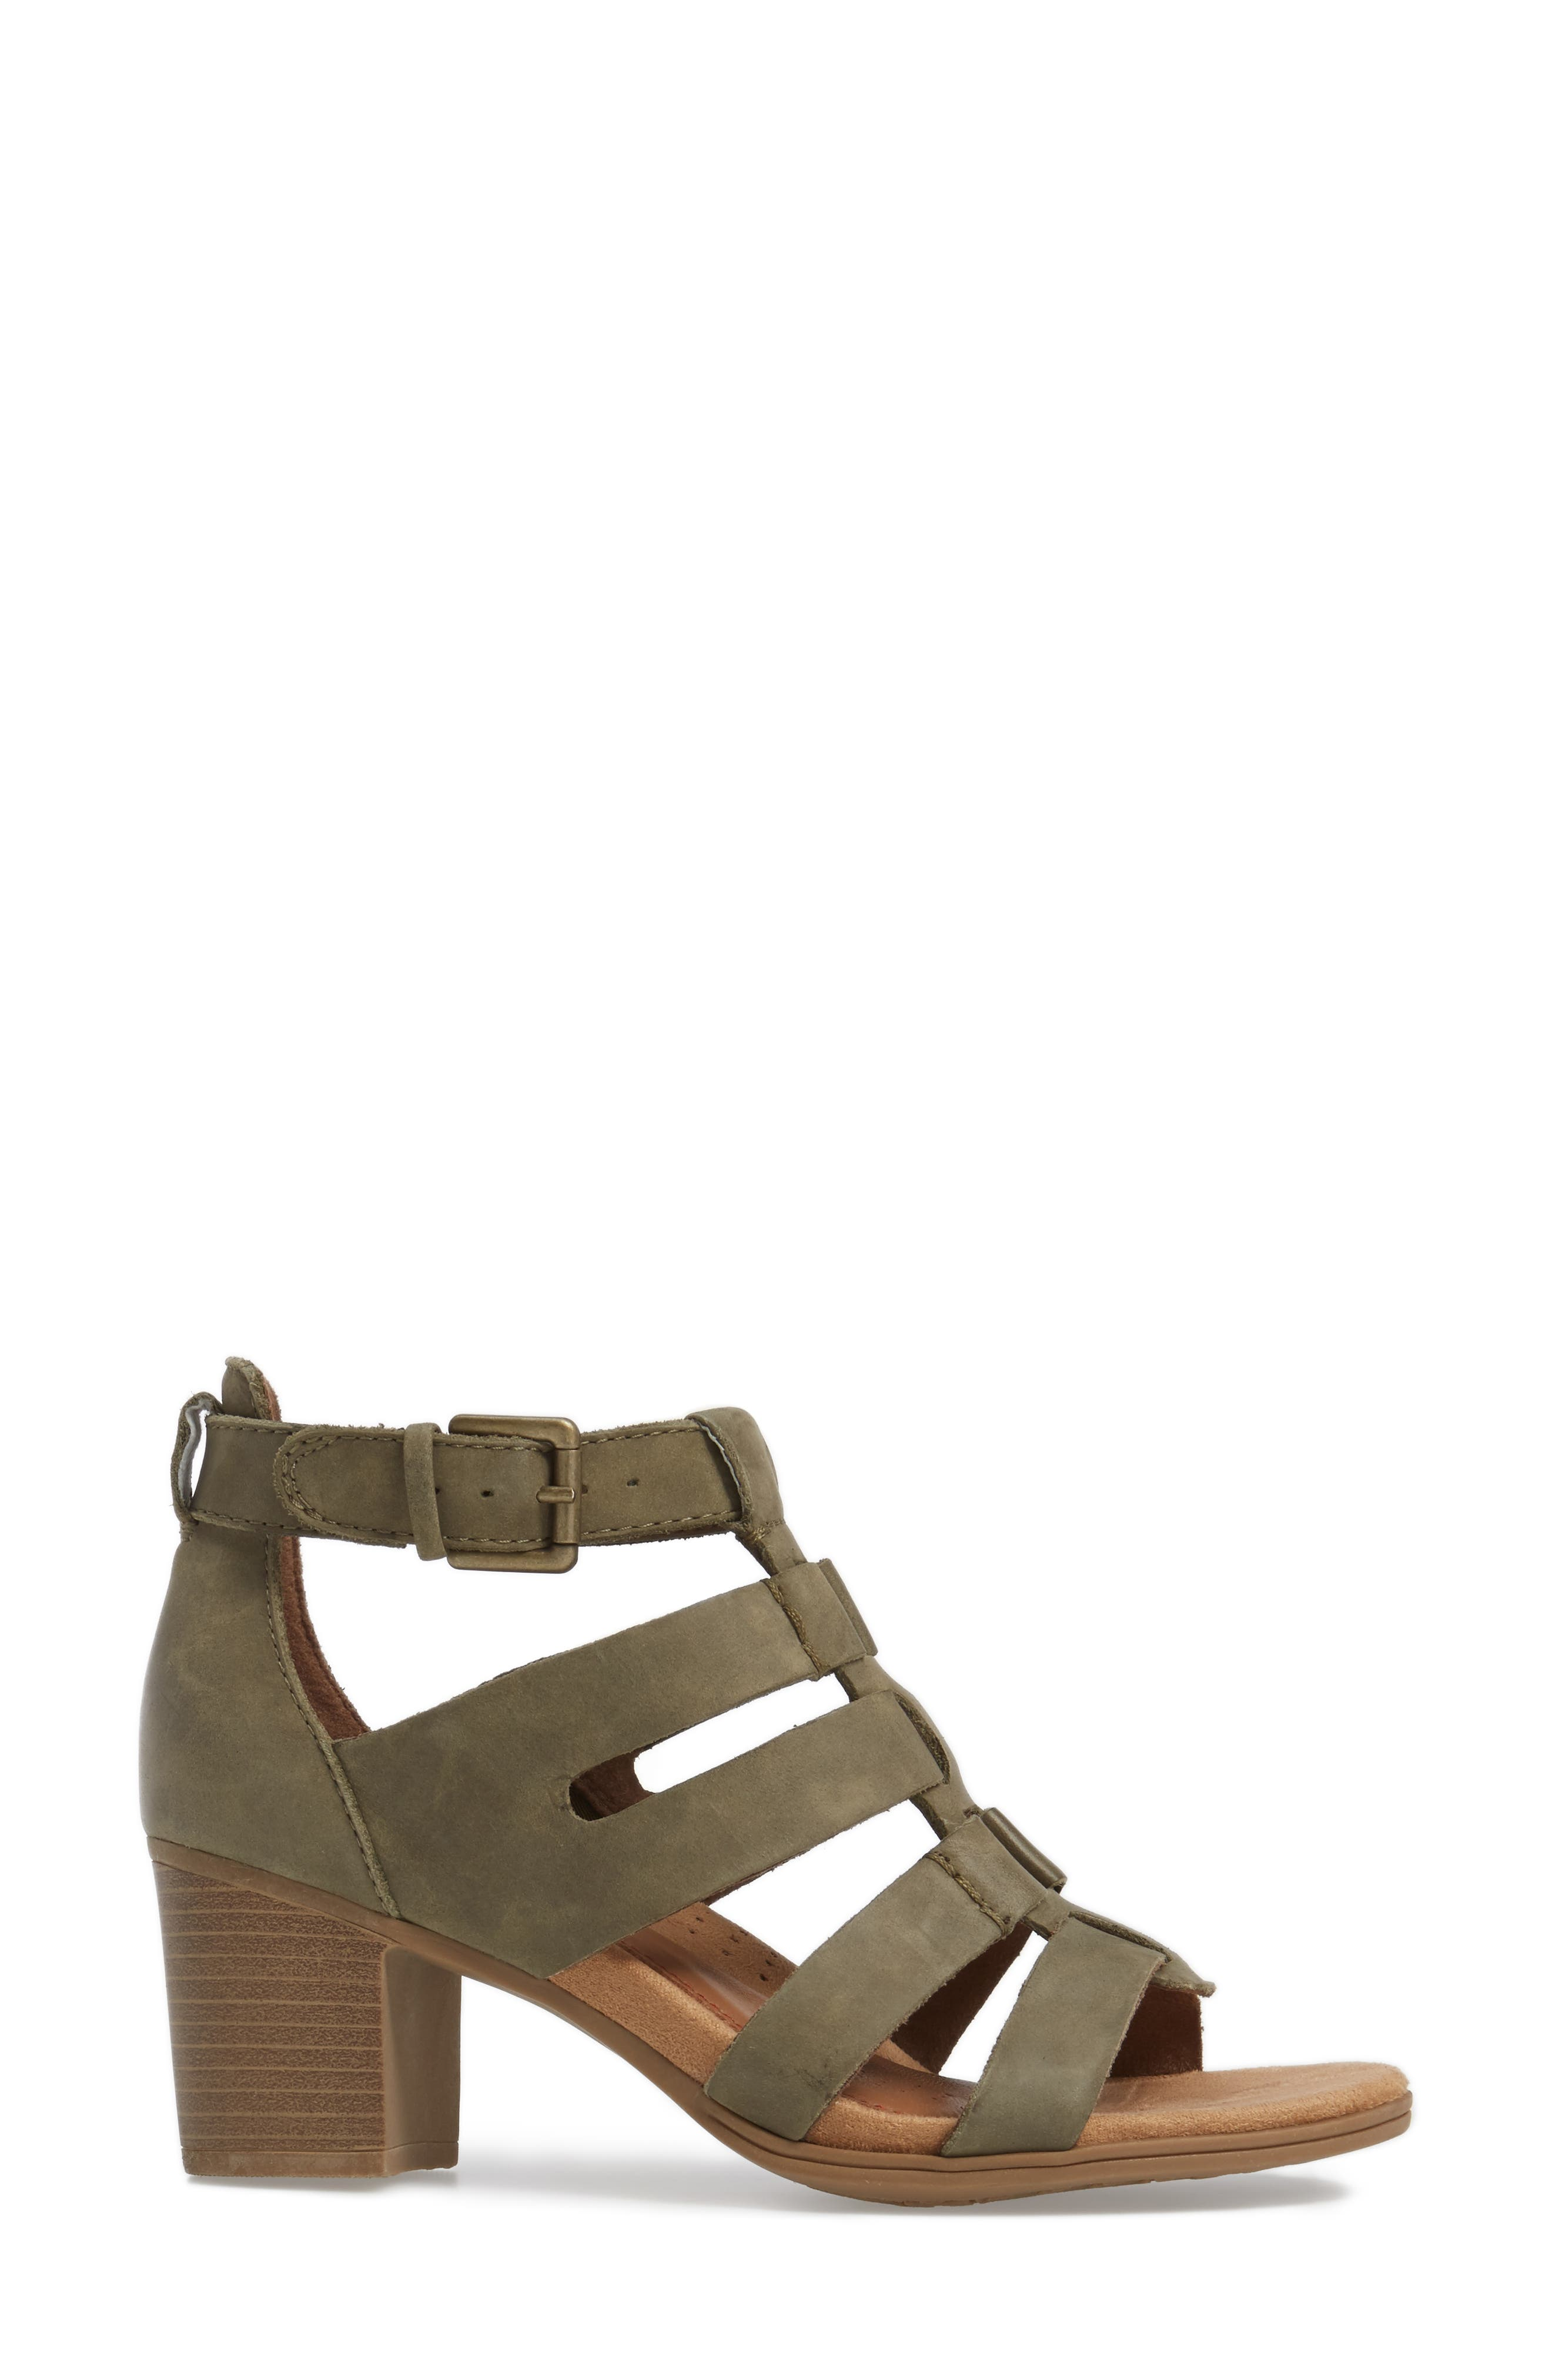 Alternate Image 3  - Rockport Cobb Hill Hattie Block Heel Gladiator Sandal (Women)